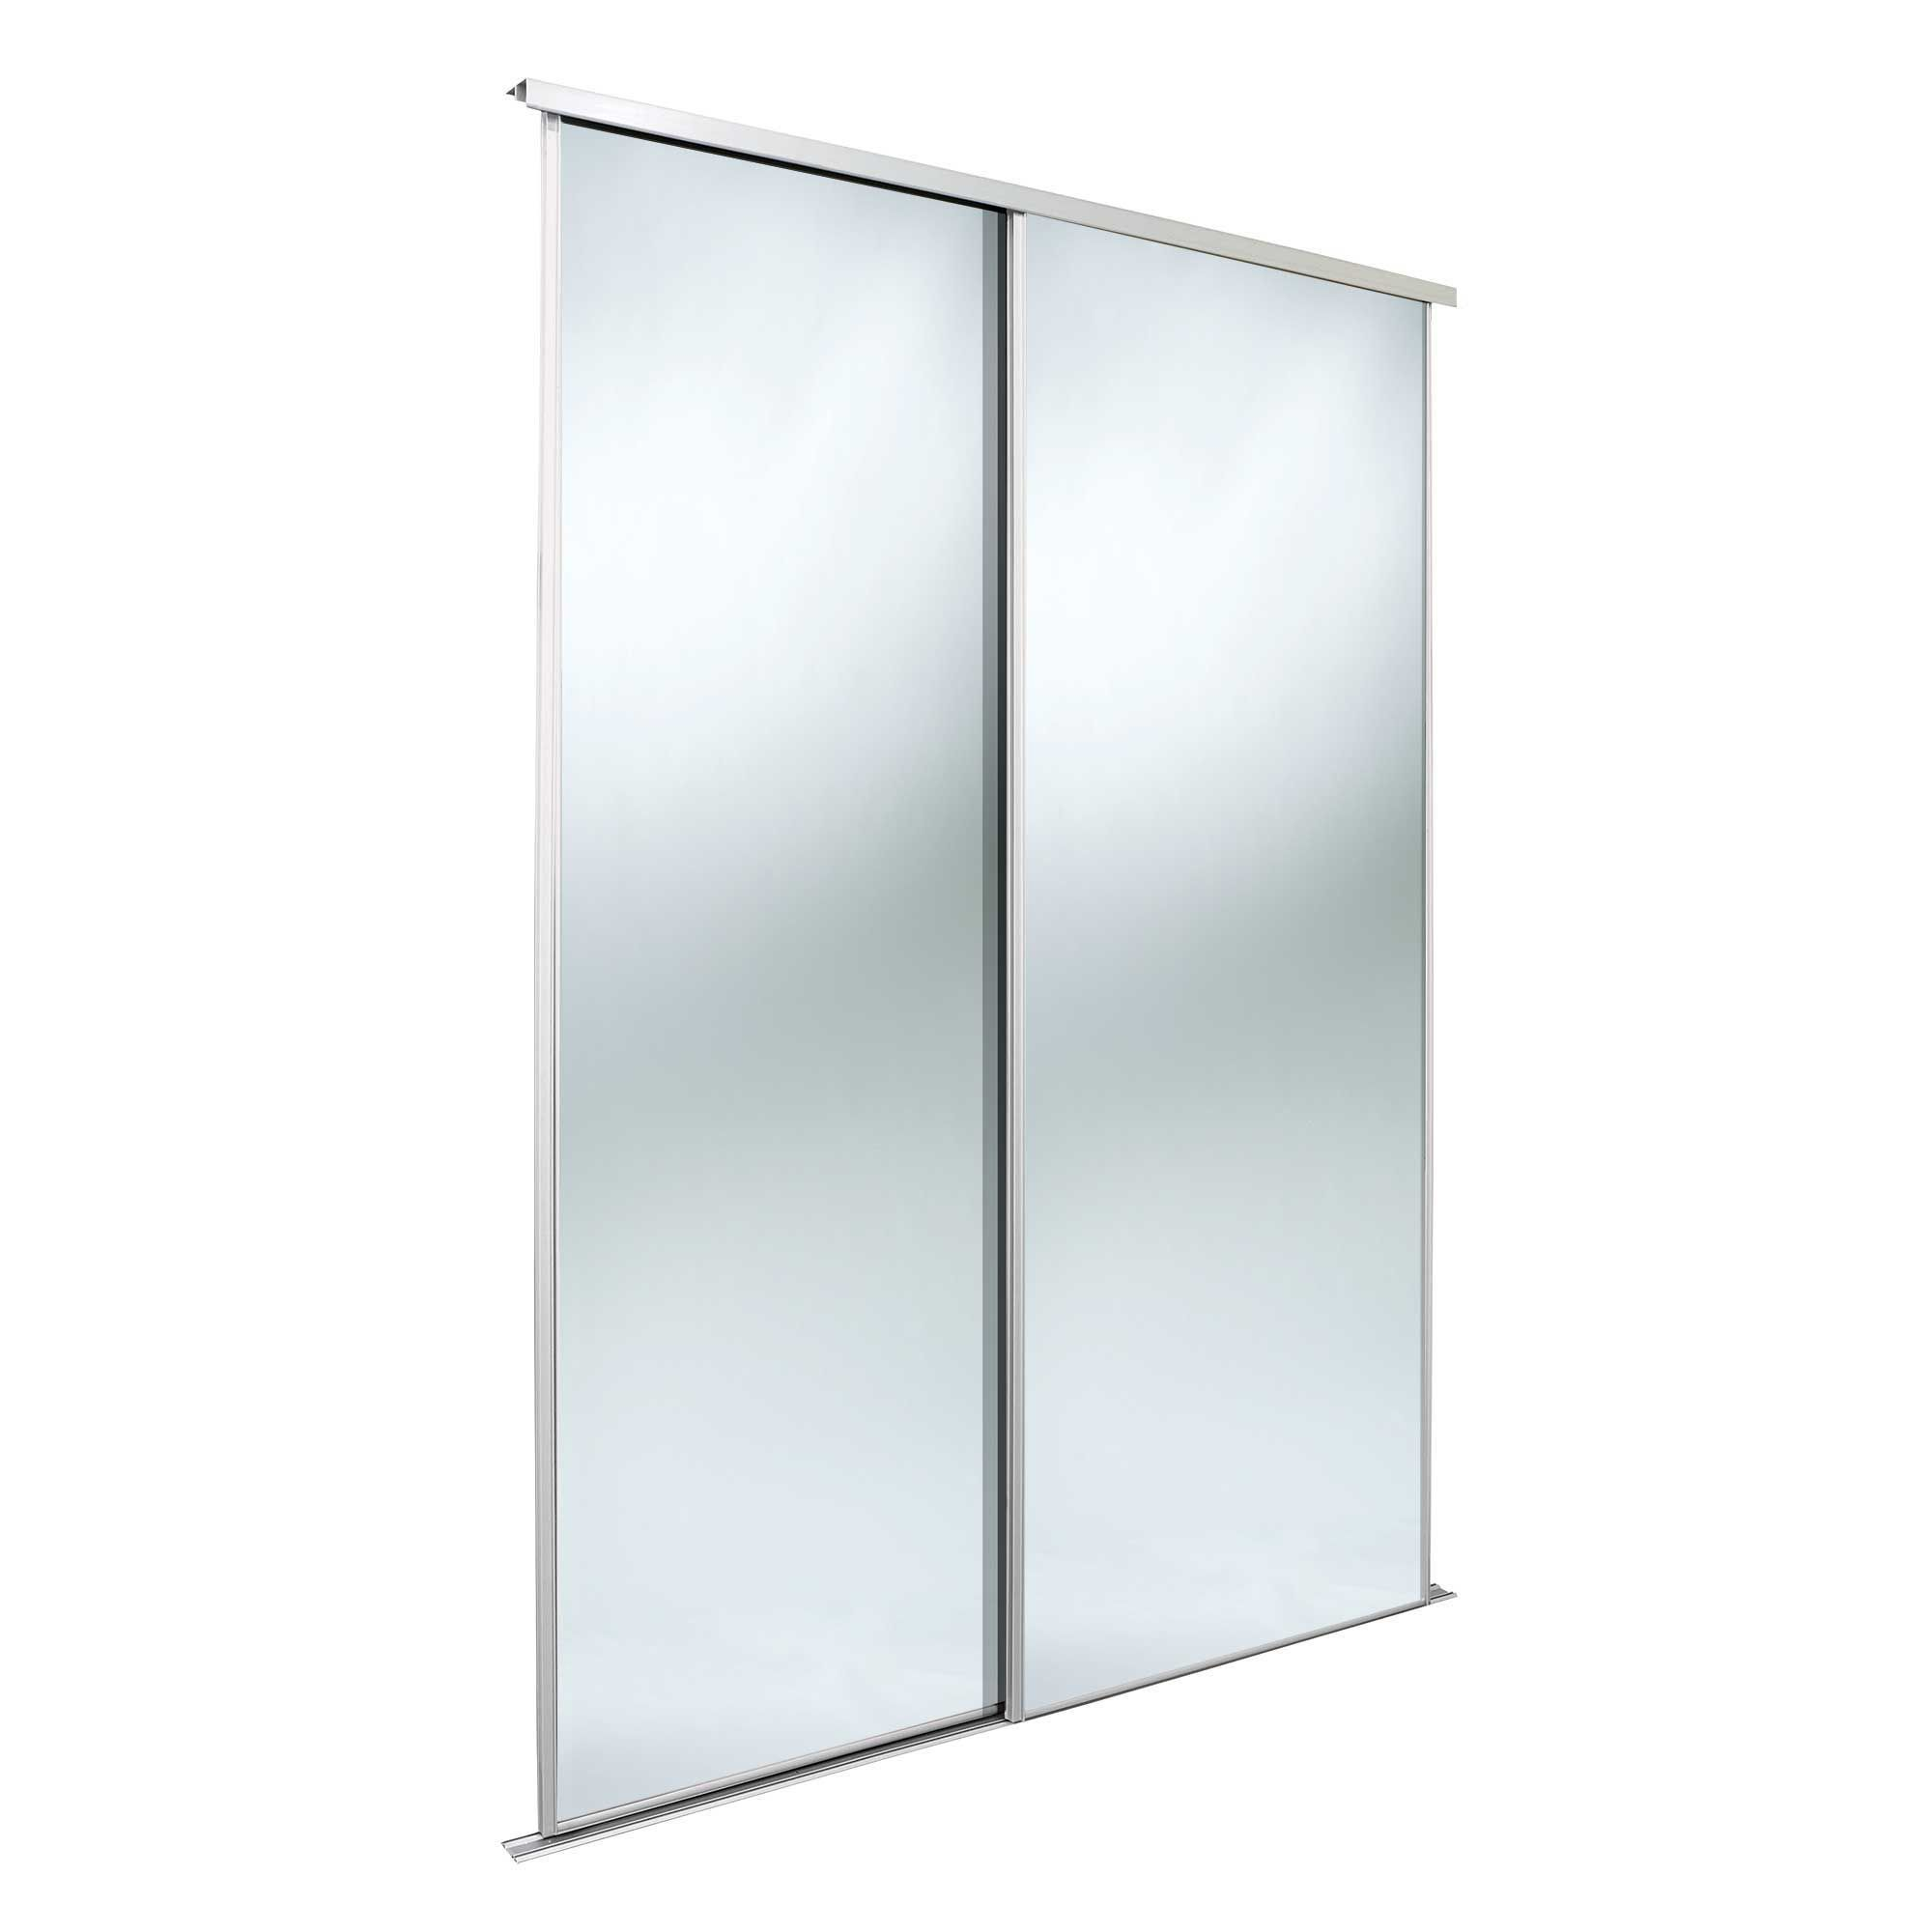 Classic Mirrored White Mirror Effect Sliding Wardrobe Door Kit (h)2220 Mm (w)914 Mm, Pack Of 2